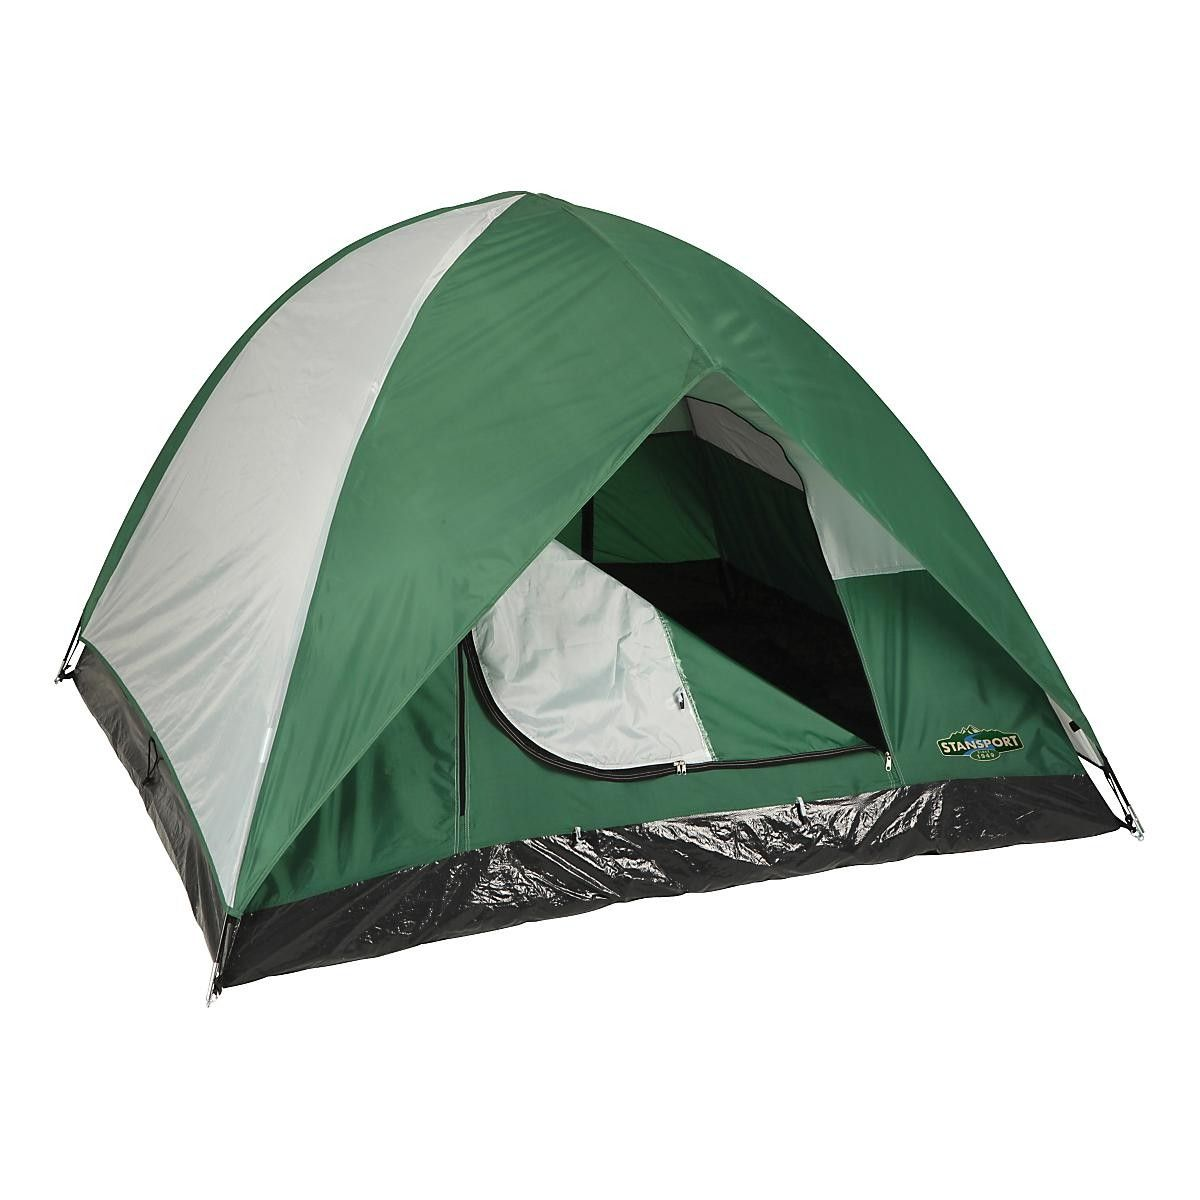 Stansport El Capitan Expedition Tent Dome tent, Family